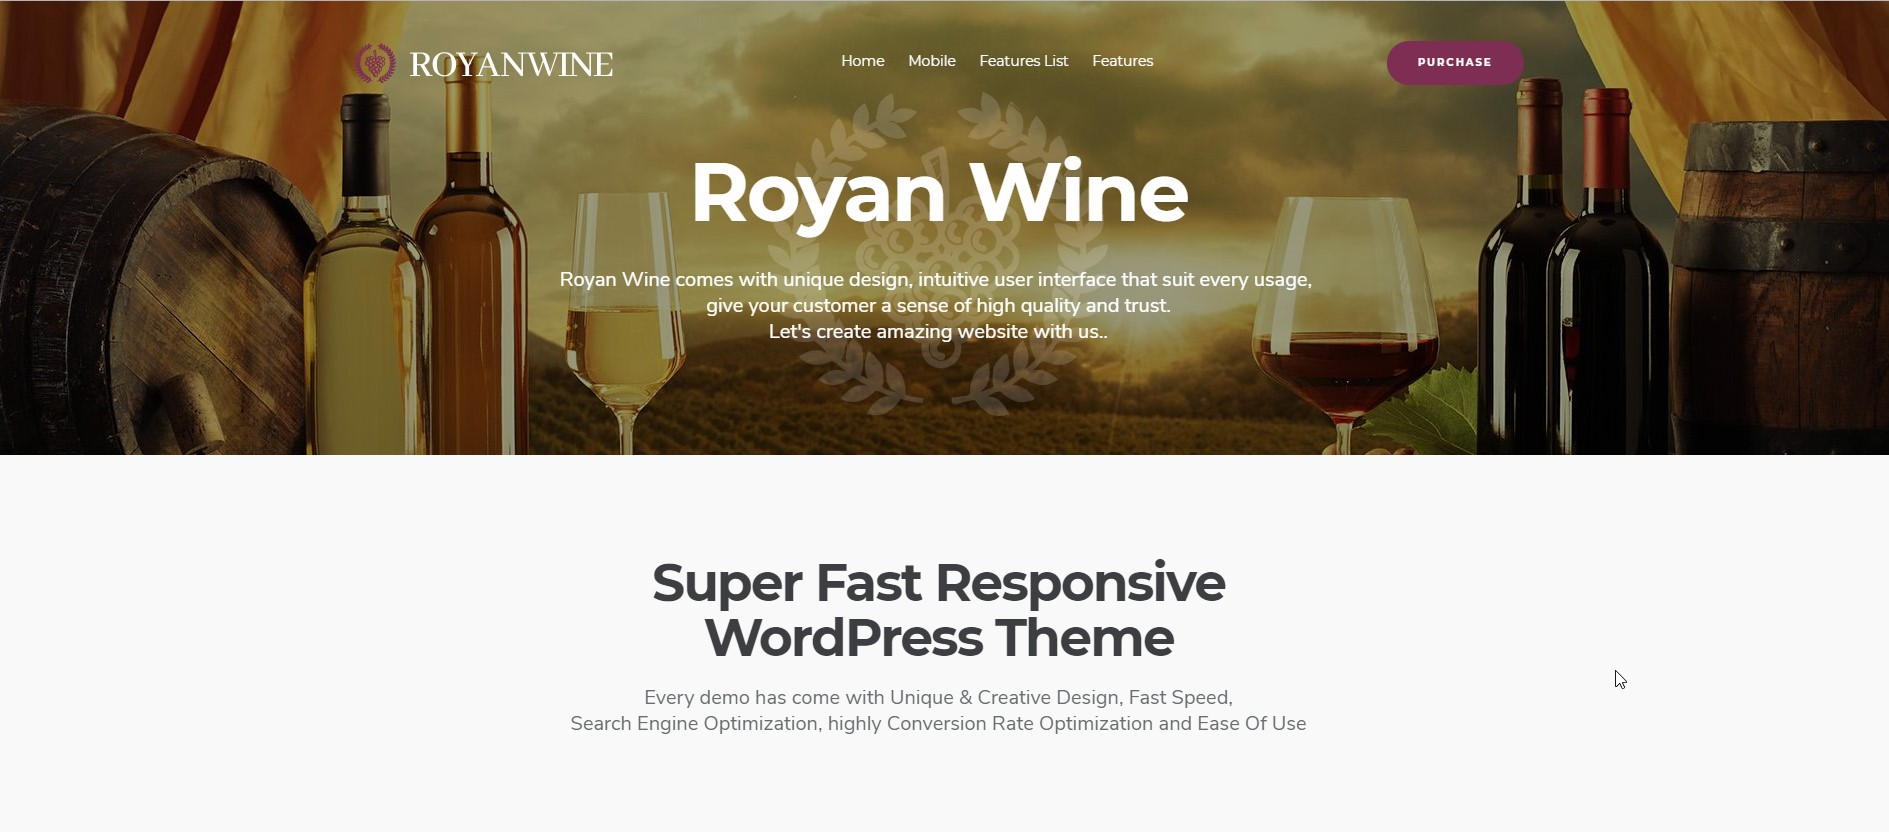 Royan Wine Vineyard, Winery, Wine Shop and Dairy Farm WordPress Theme